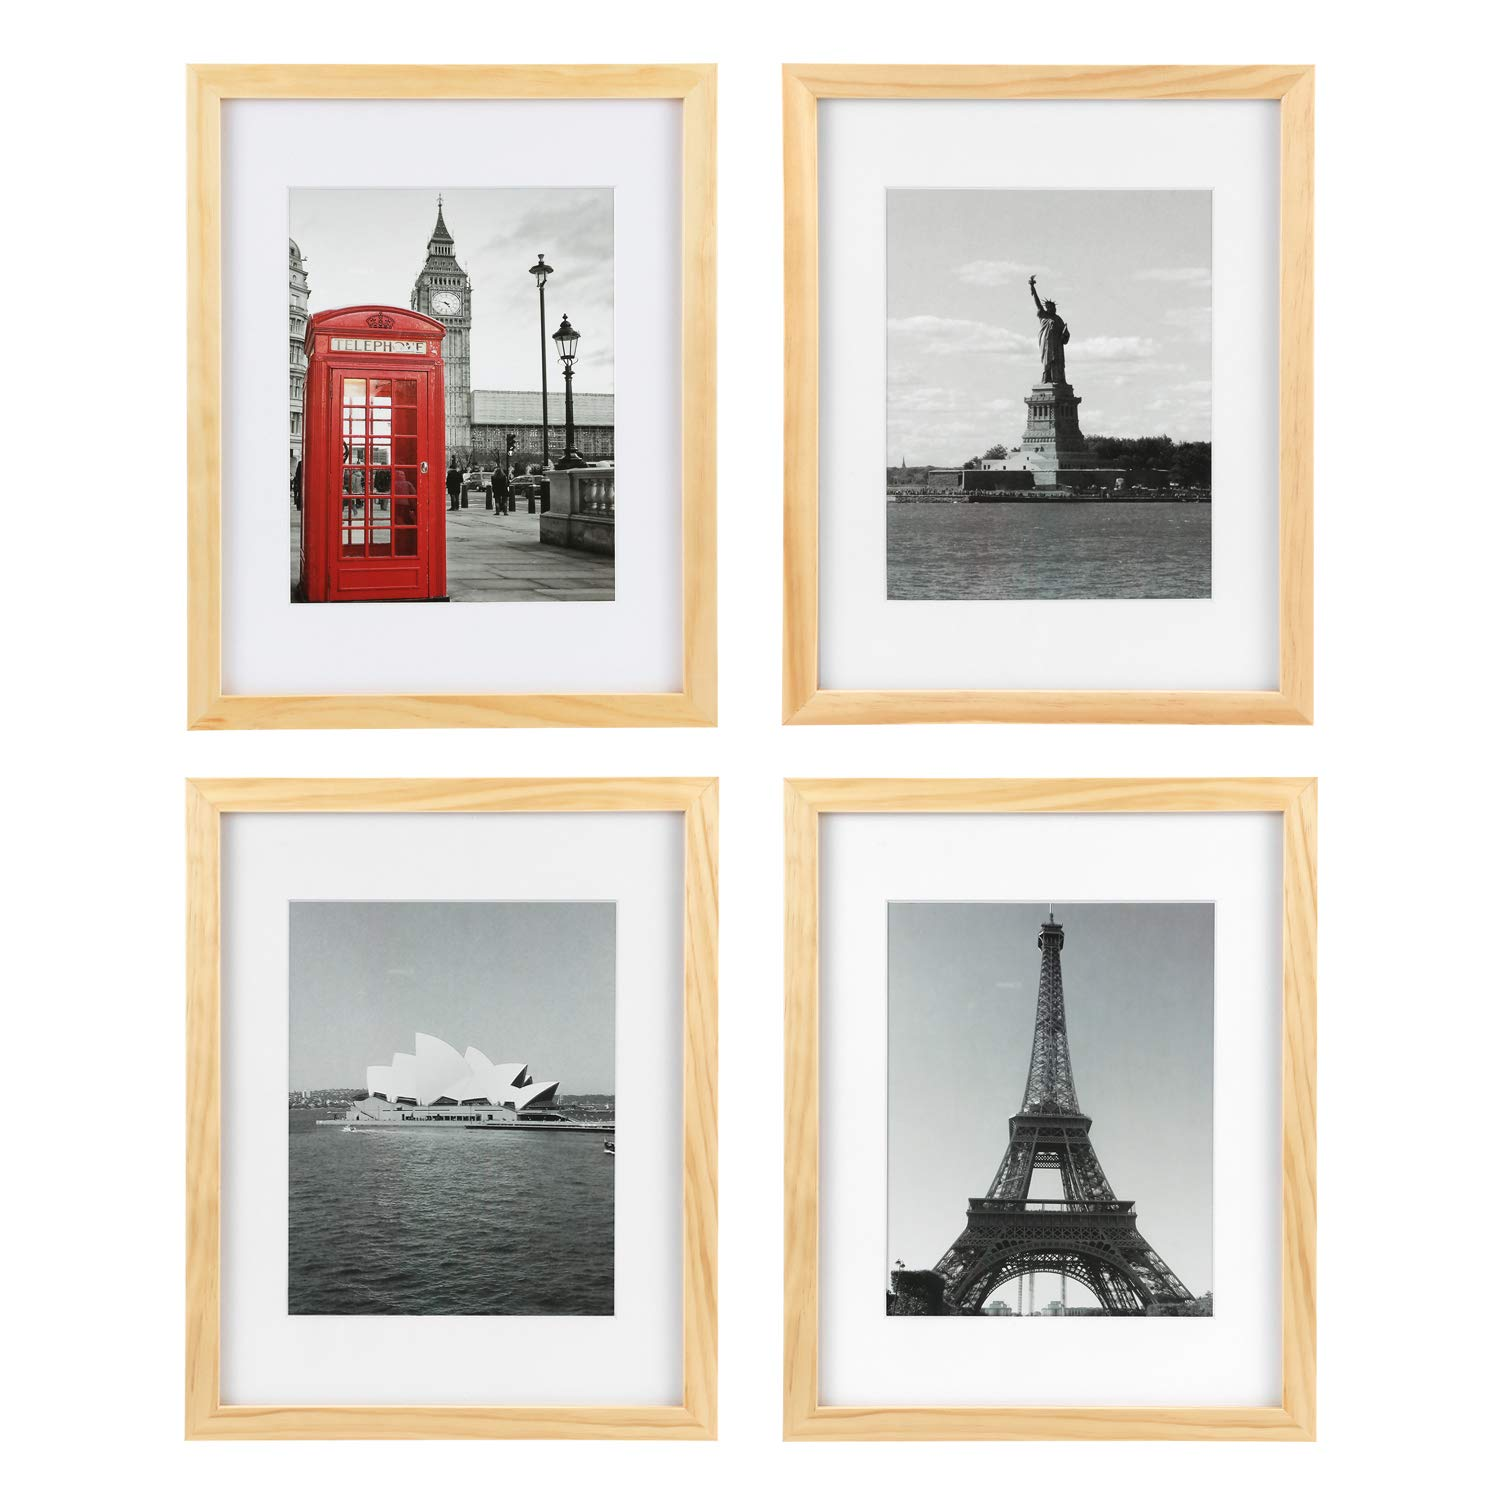 ONE WALL Tempered Glass 11x14 Picture Frame Solid Wooden Frame Set of 4 with Mats for 8x10 Photo, Natural Wood Color Frames for Wall Mounting or Tabletop - Mounting Hardware Included by ONE WALL